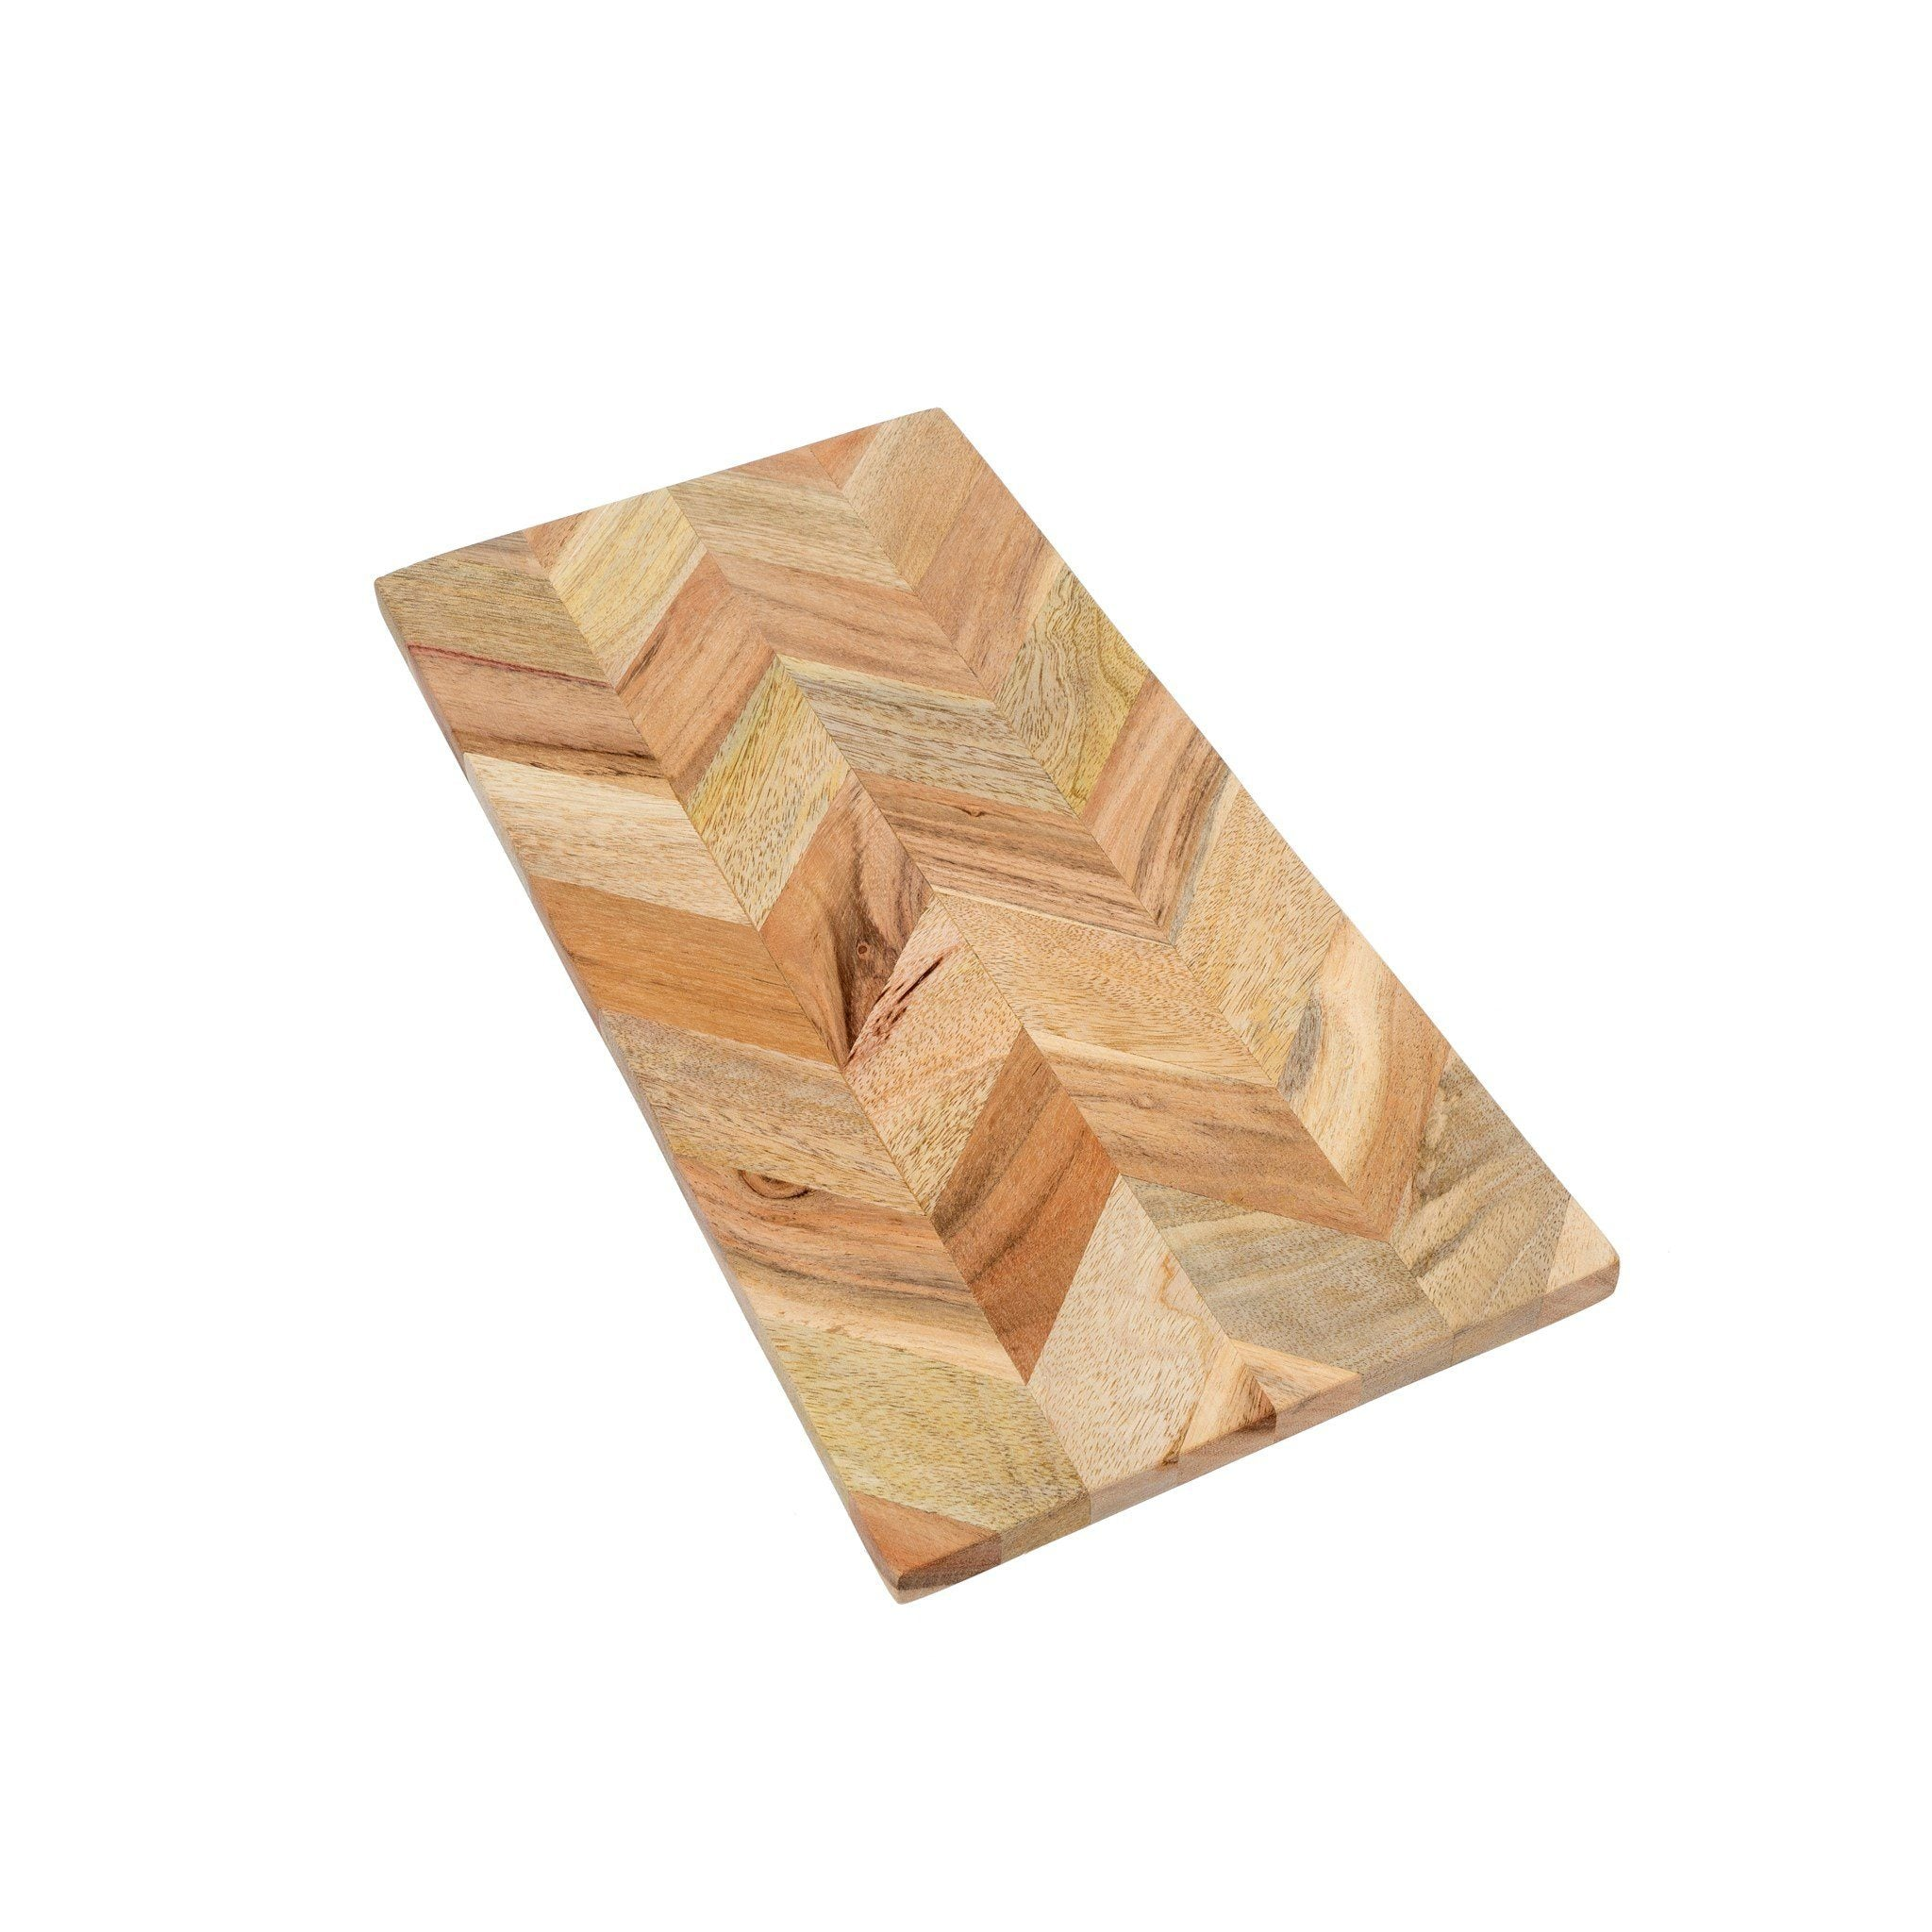 Herringbone Cheese Board Cutting Board Indaba Small